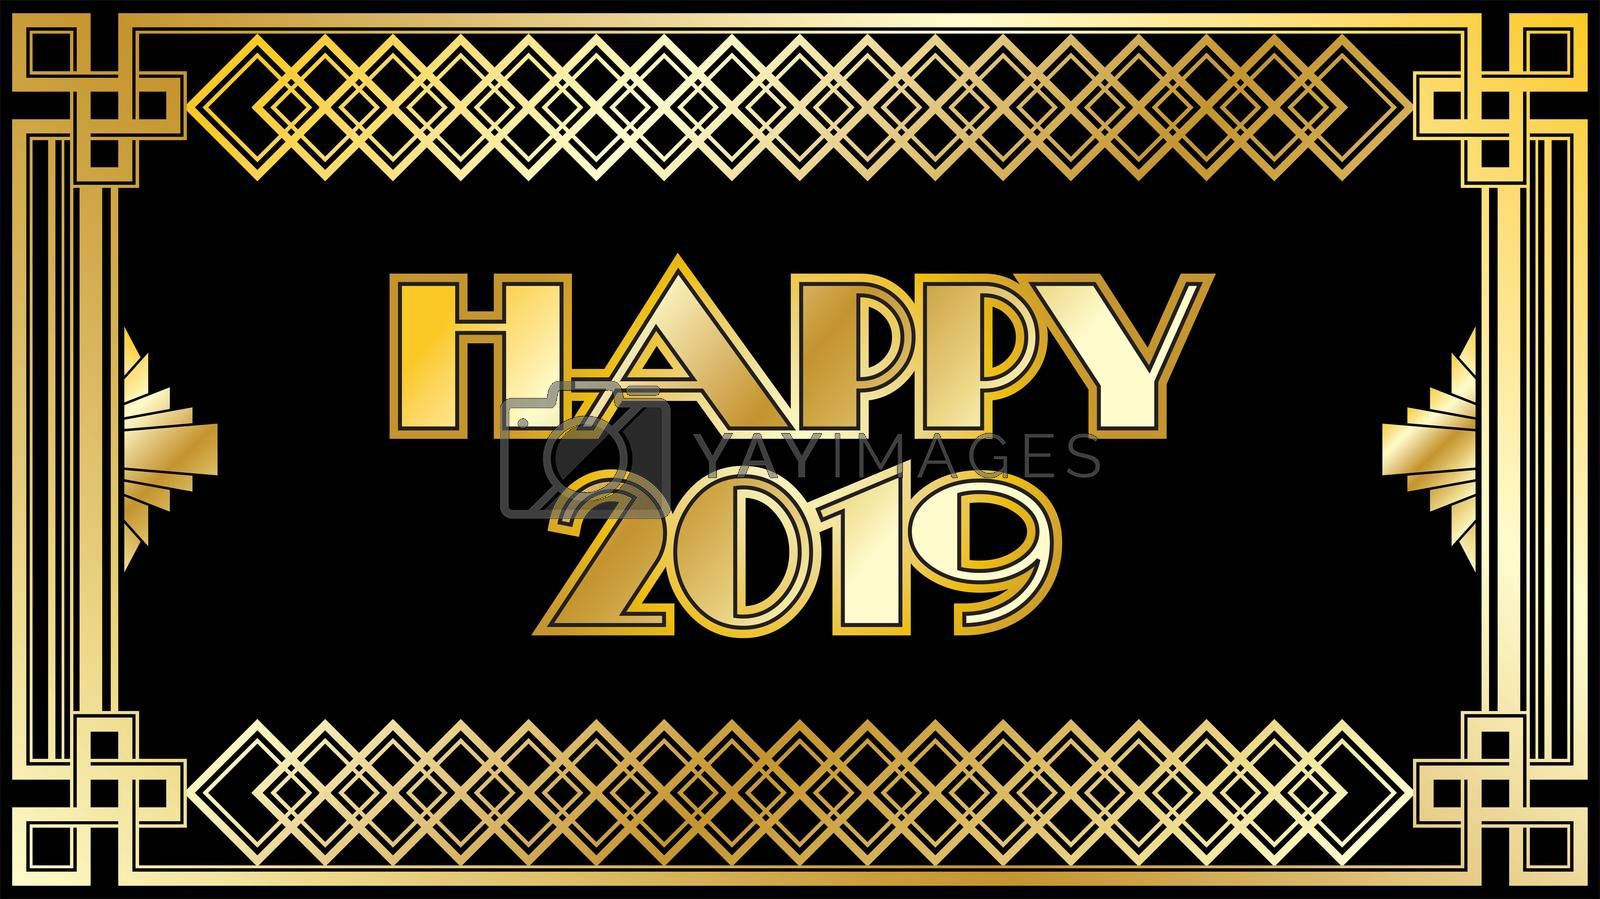 2019 New Years Countdown clock with black and gold background pattern